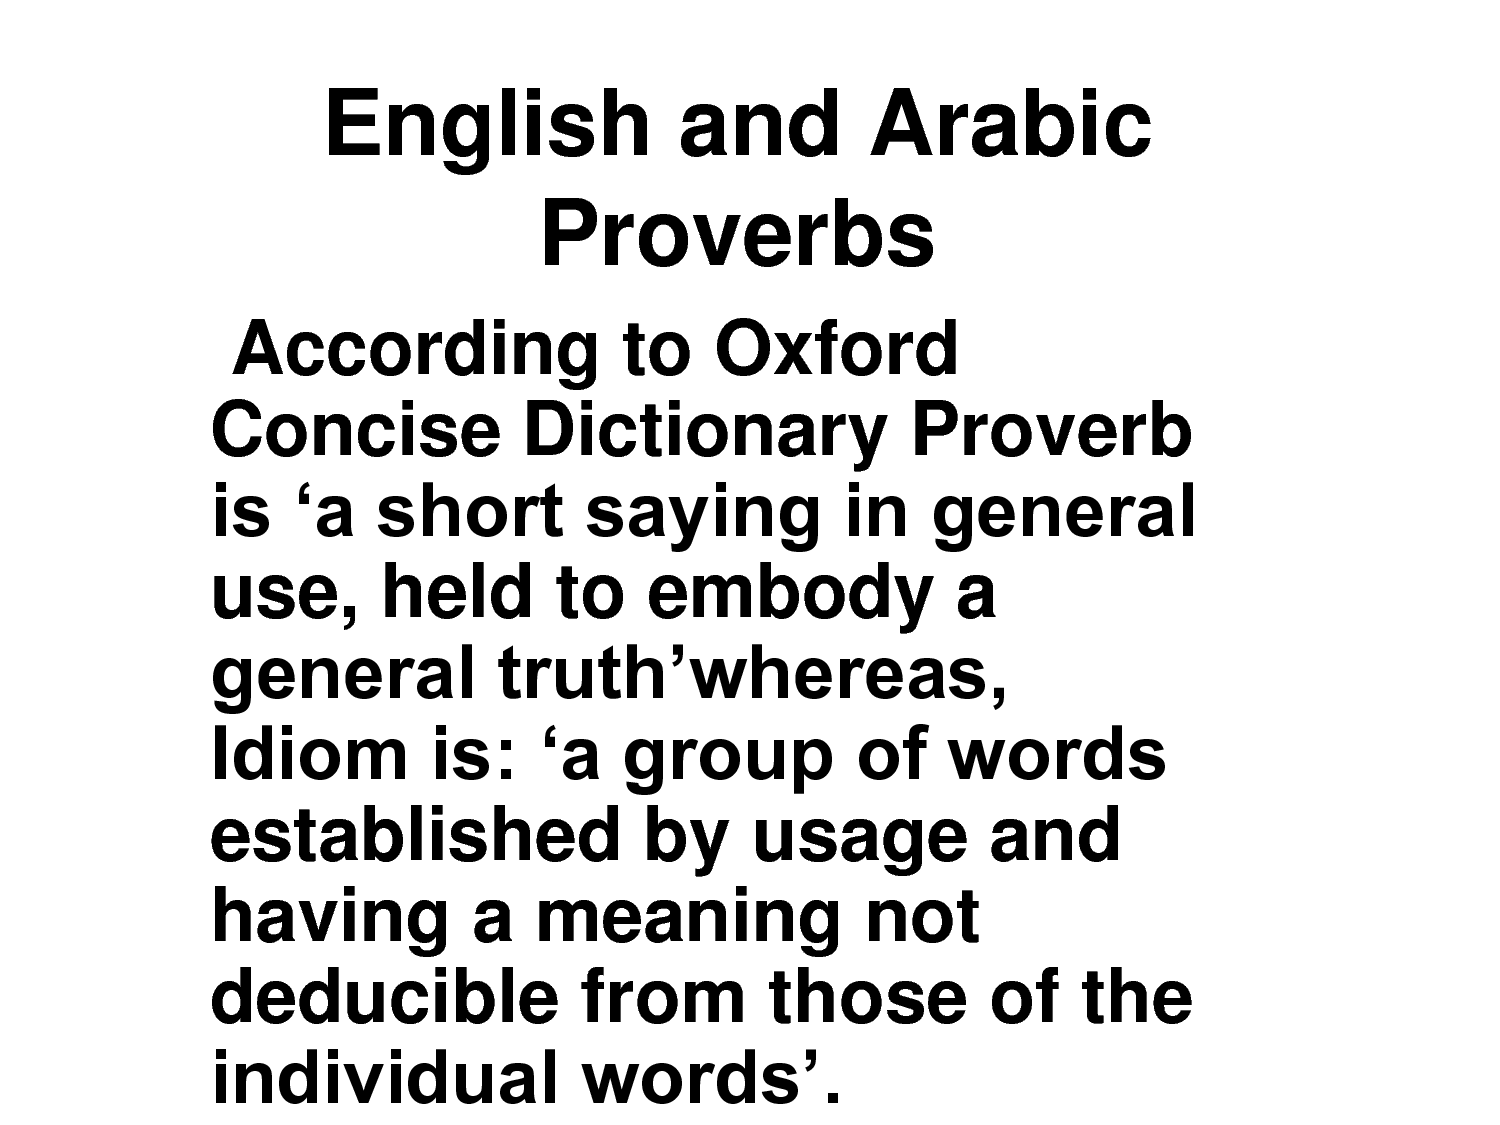 According To Oxford Concise Dictionary Proverb Is U0027a Short Saying In  General Use, Held To Embody A General Truthu0027Whereas, Idiom Is U0027a Group Of  Words ...